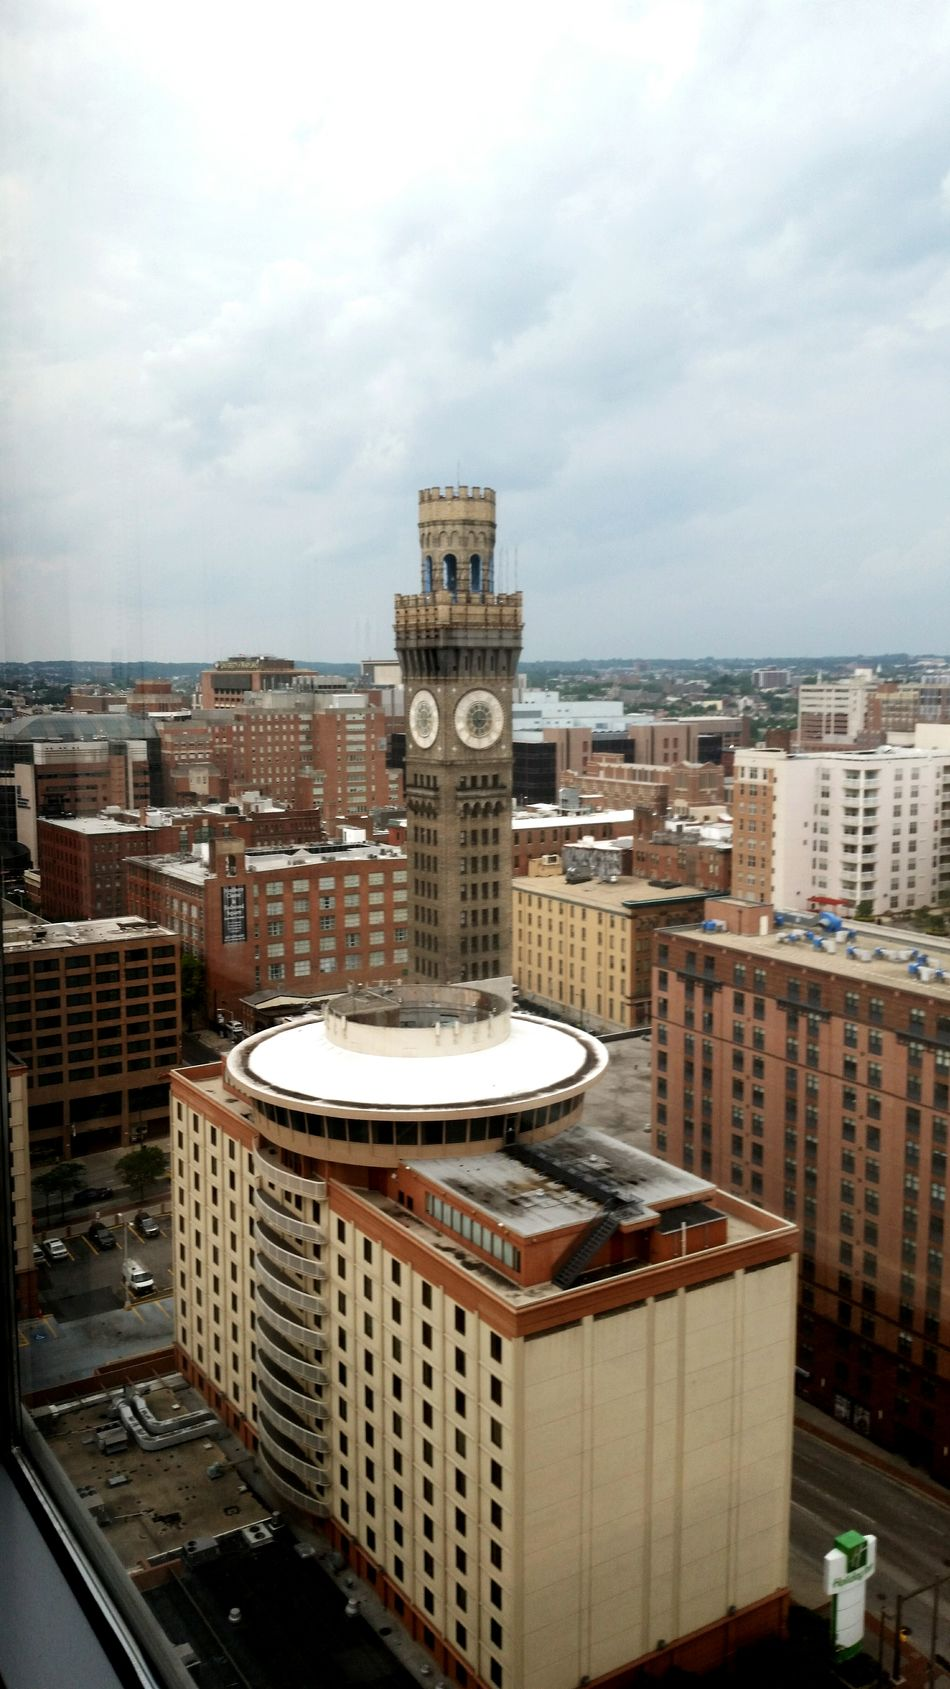 View from the 18th floor. Baltimore Baltimore Clock Tower Baltimore Maryland Baltimore Harbor BaltimoreCity Baltimore City Cloudy Clouds And Sky Cloudy Day Cloudy Skies Clock Tower Clocktower Clock Face Storm City